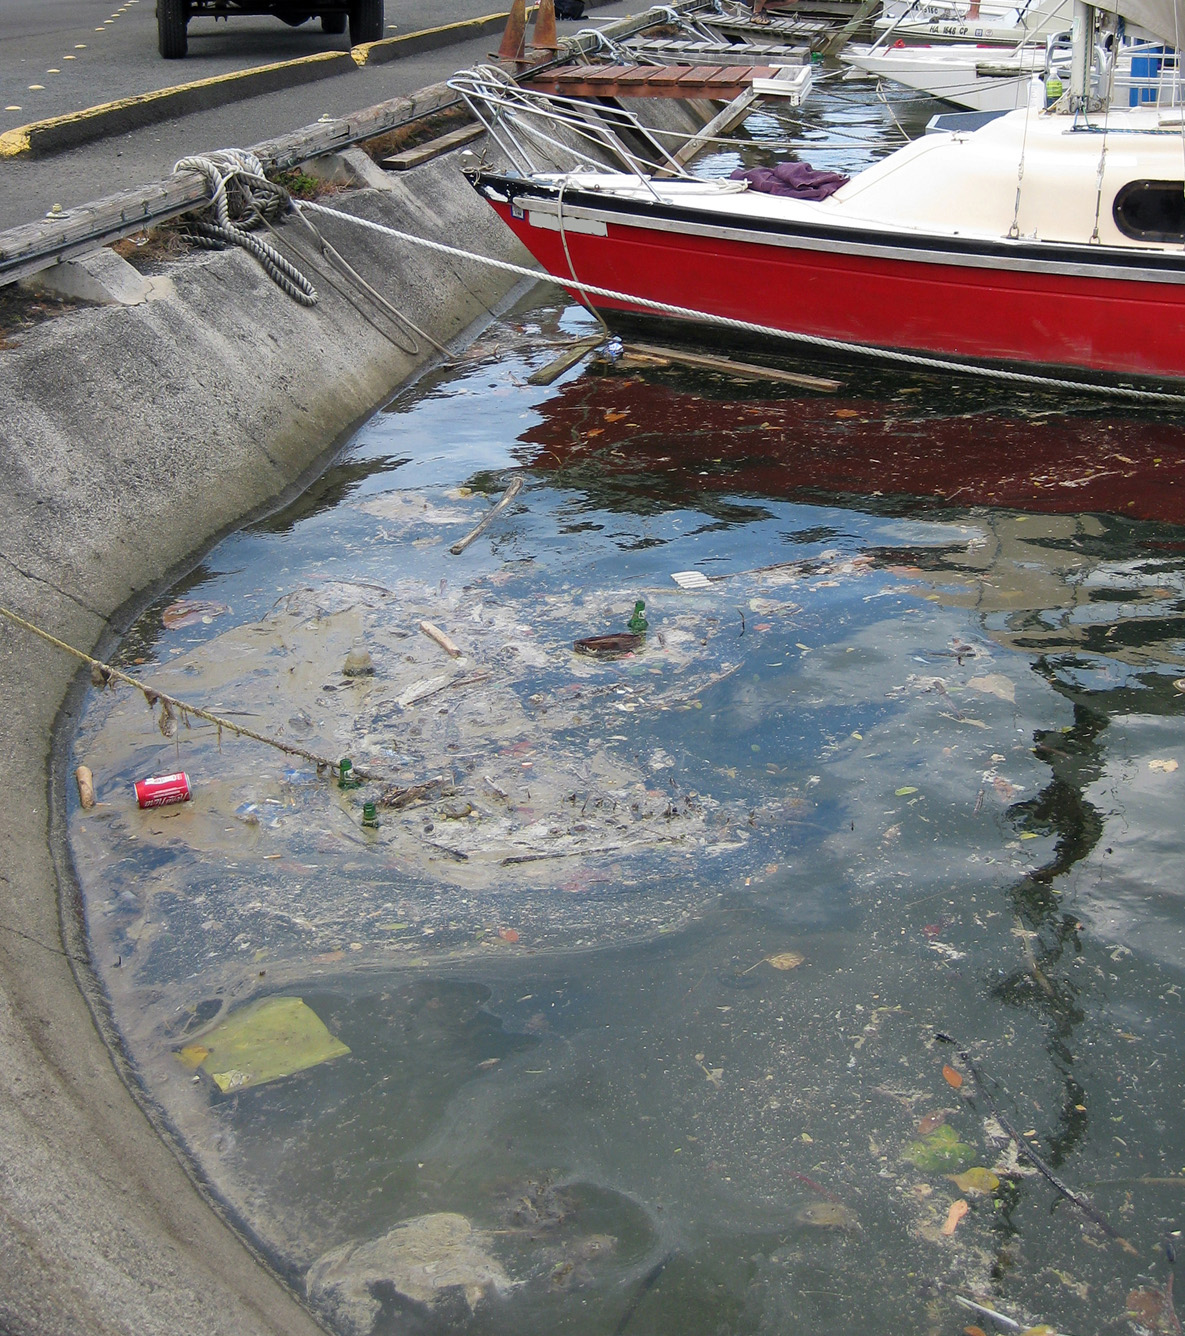 Marine debris, washed into the marina through storm drains and street runoff.